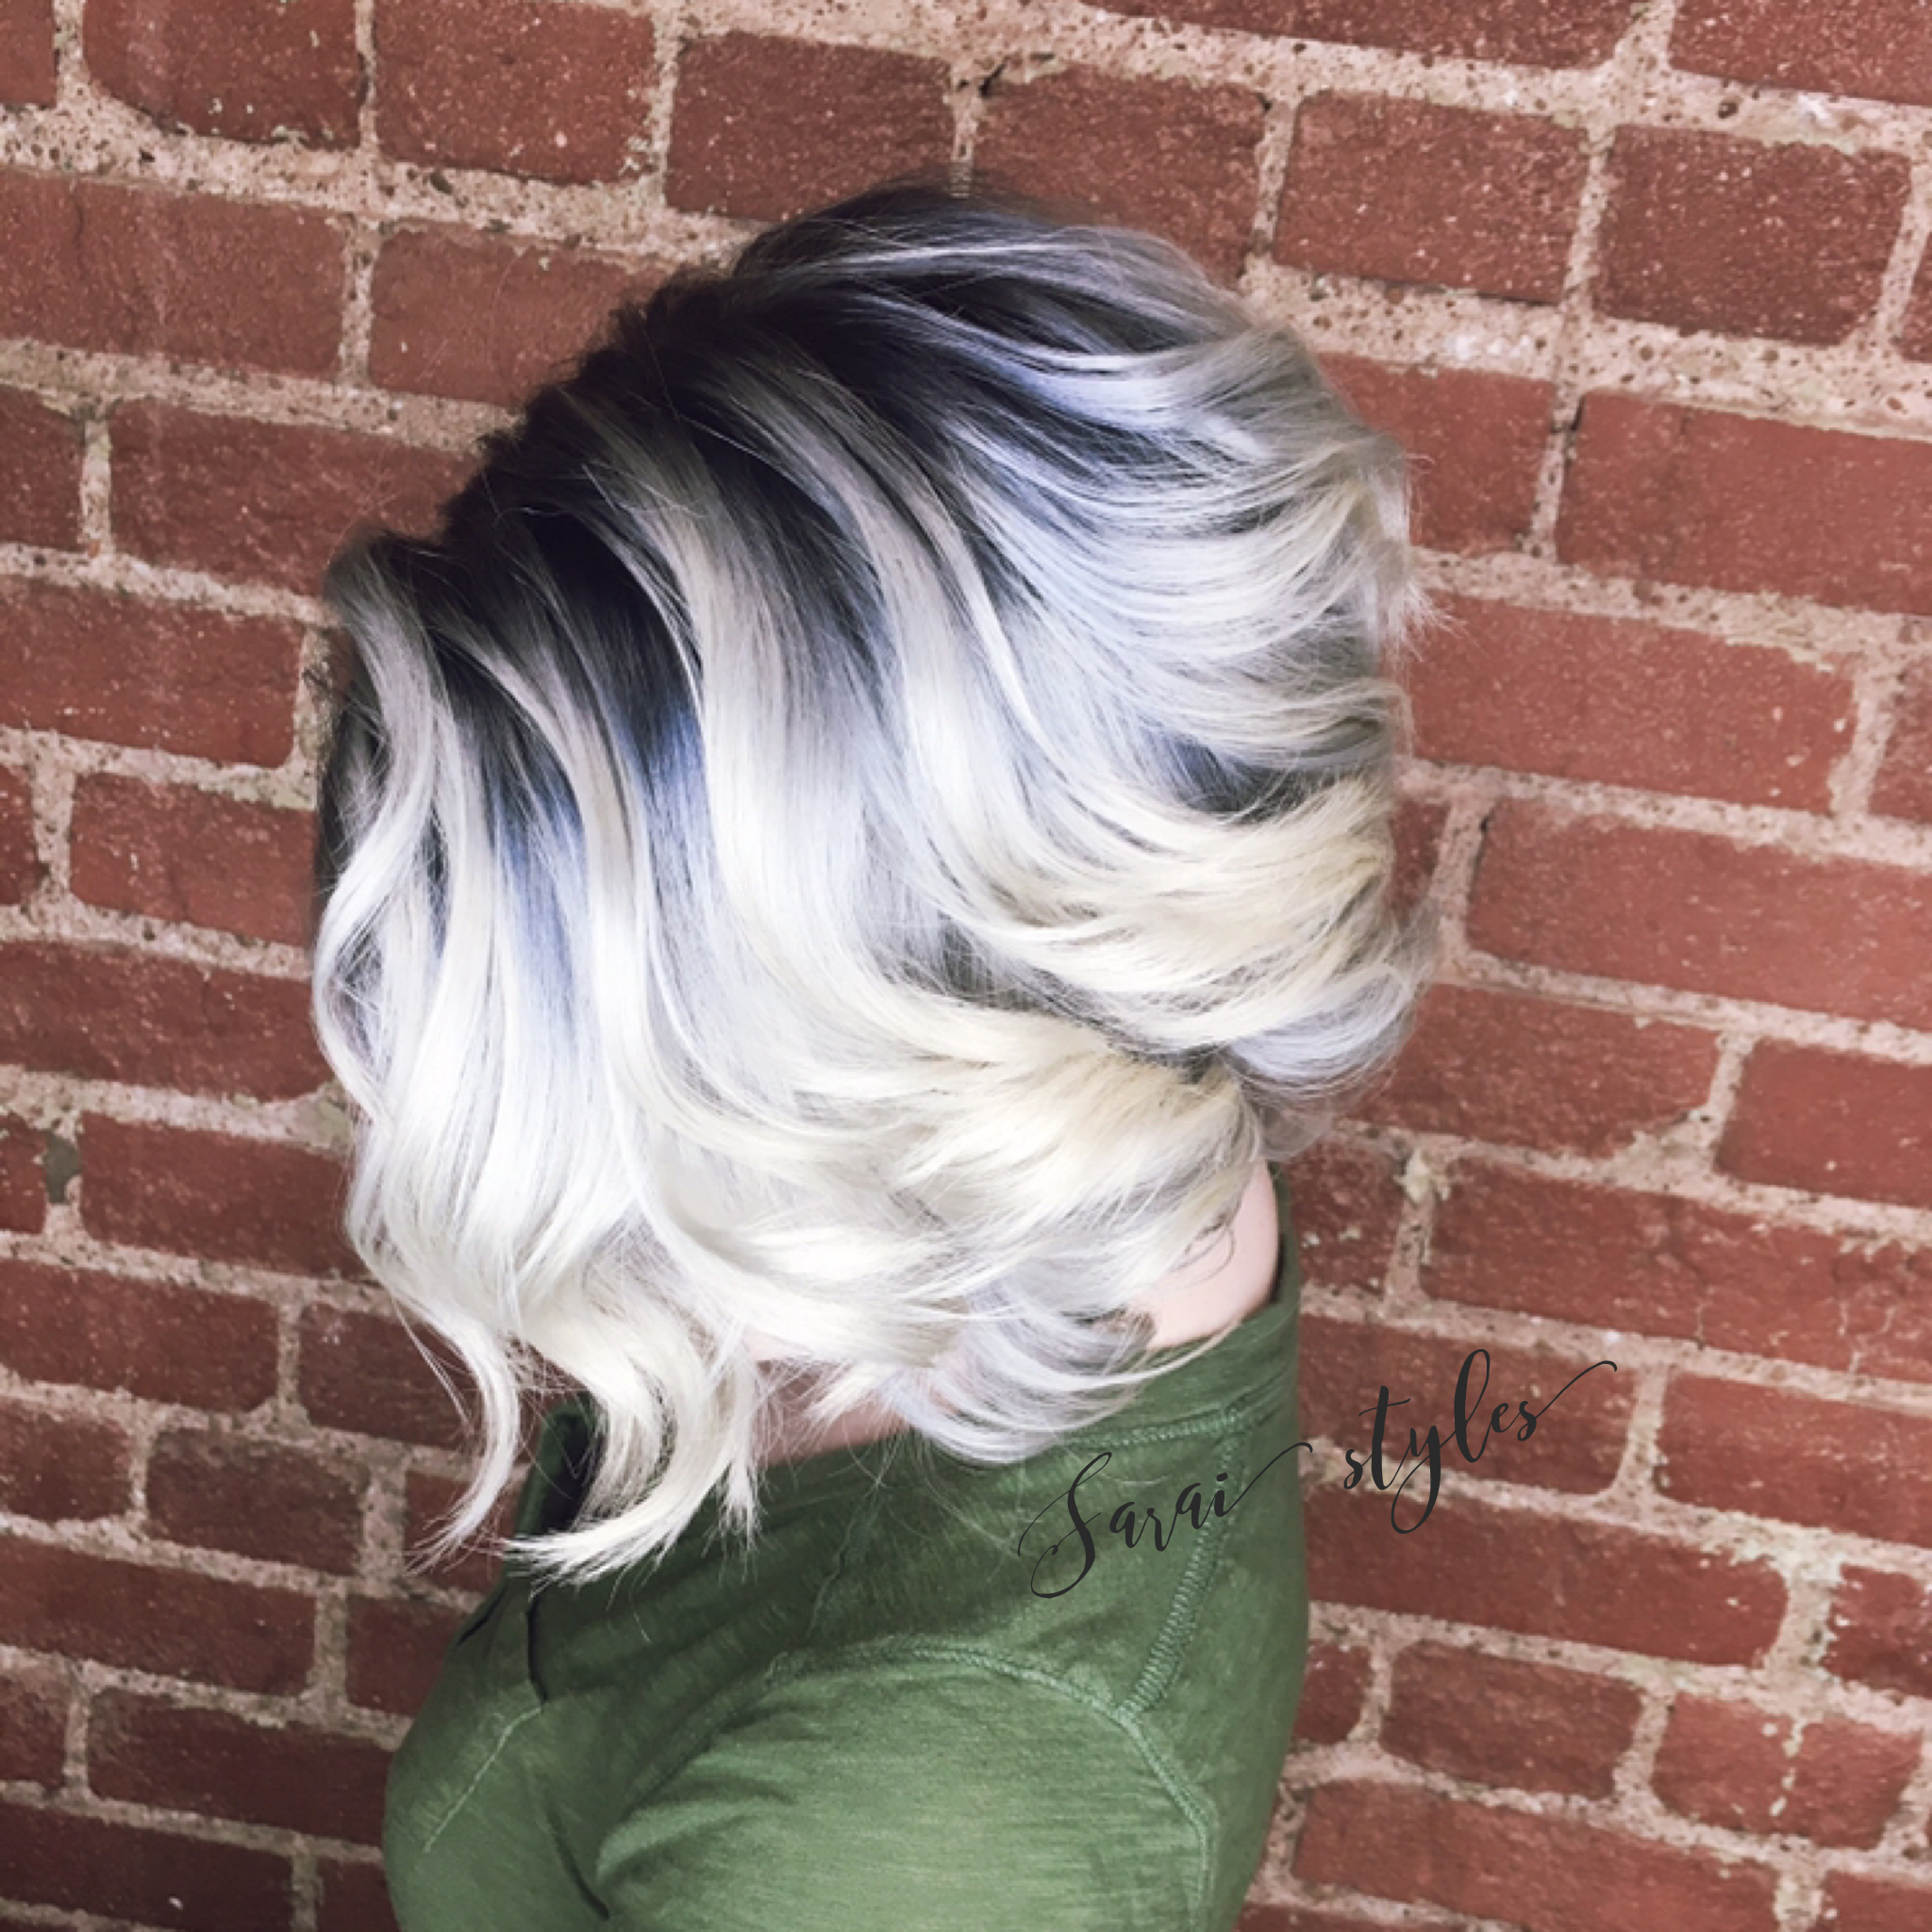 Follow This Board For More Fun Hair Ideas Blonde Hair With Roots Short Hair Styles Hair Styles